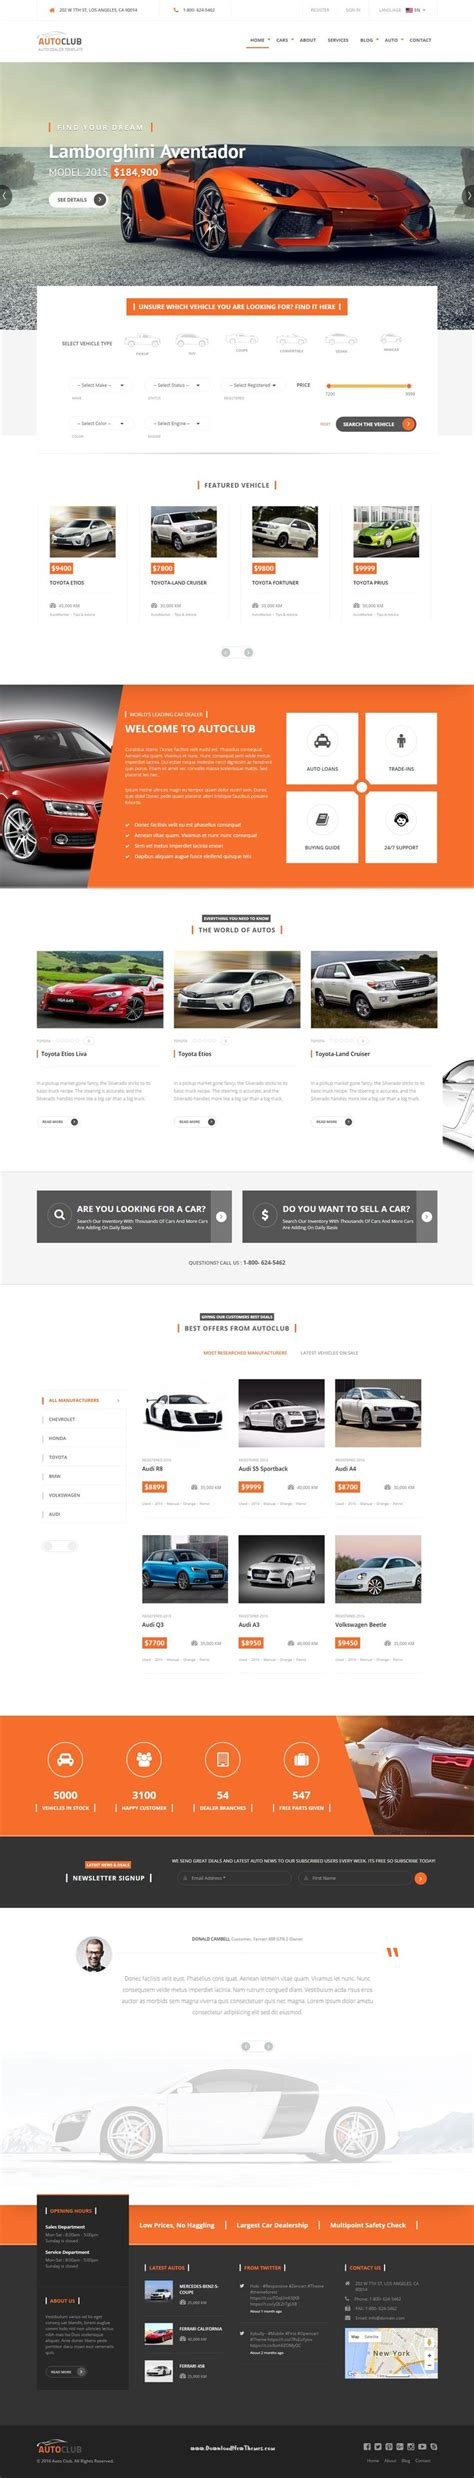 web design inspiration joomla 25 best ideas about auto site on pinterest the cars the